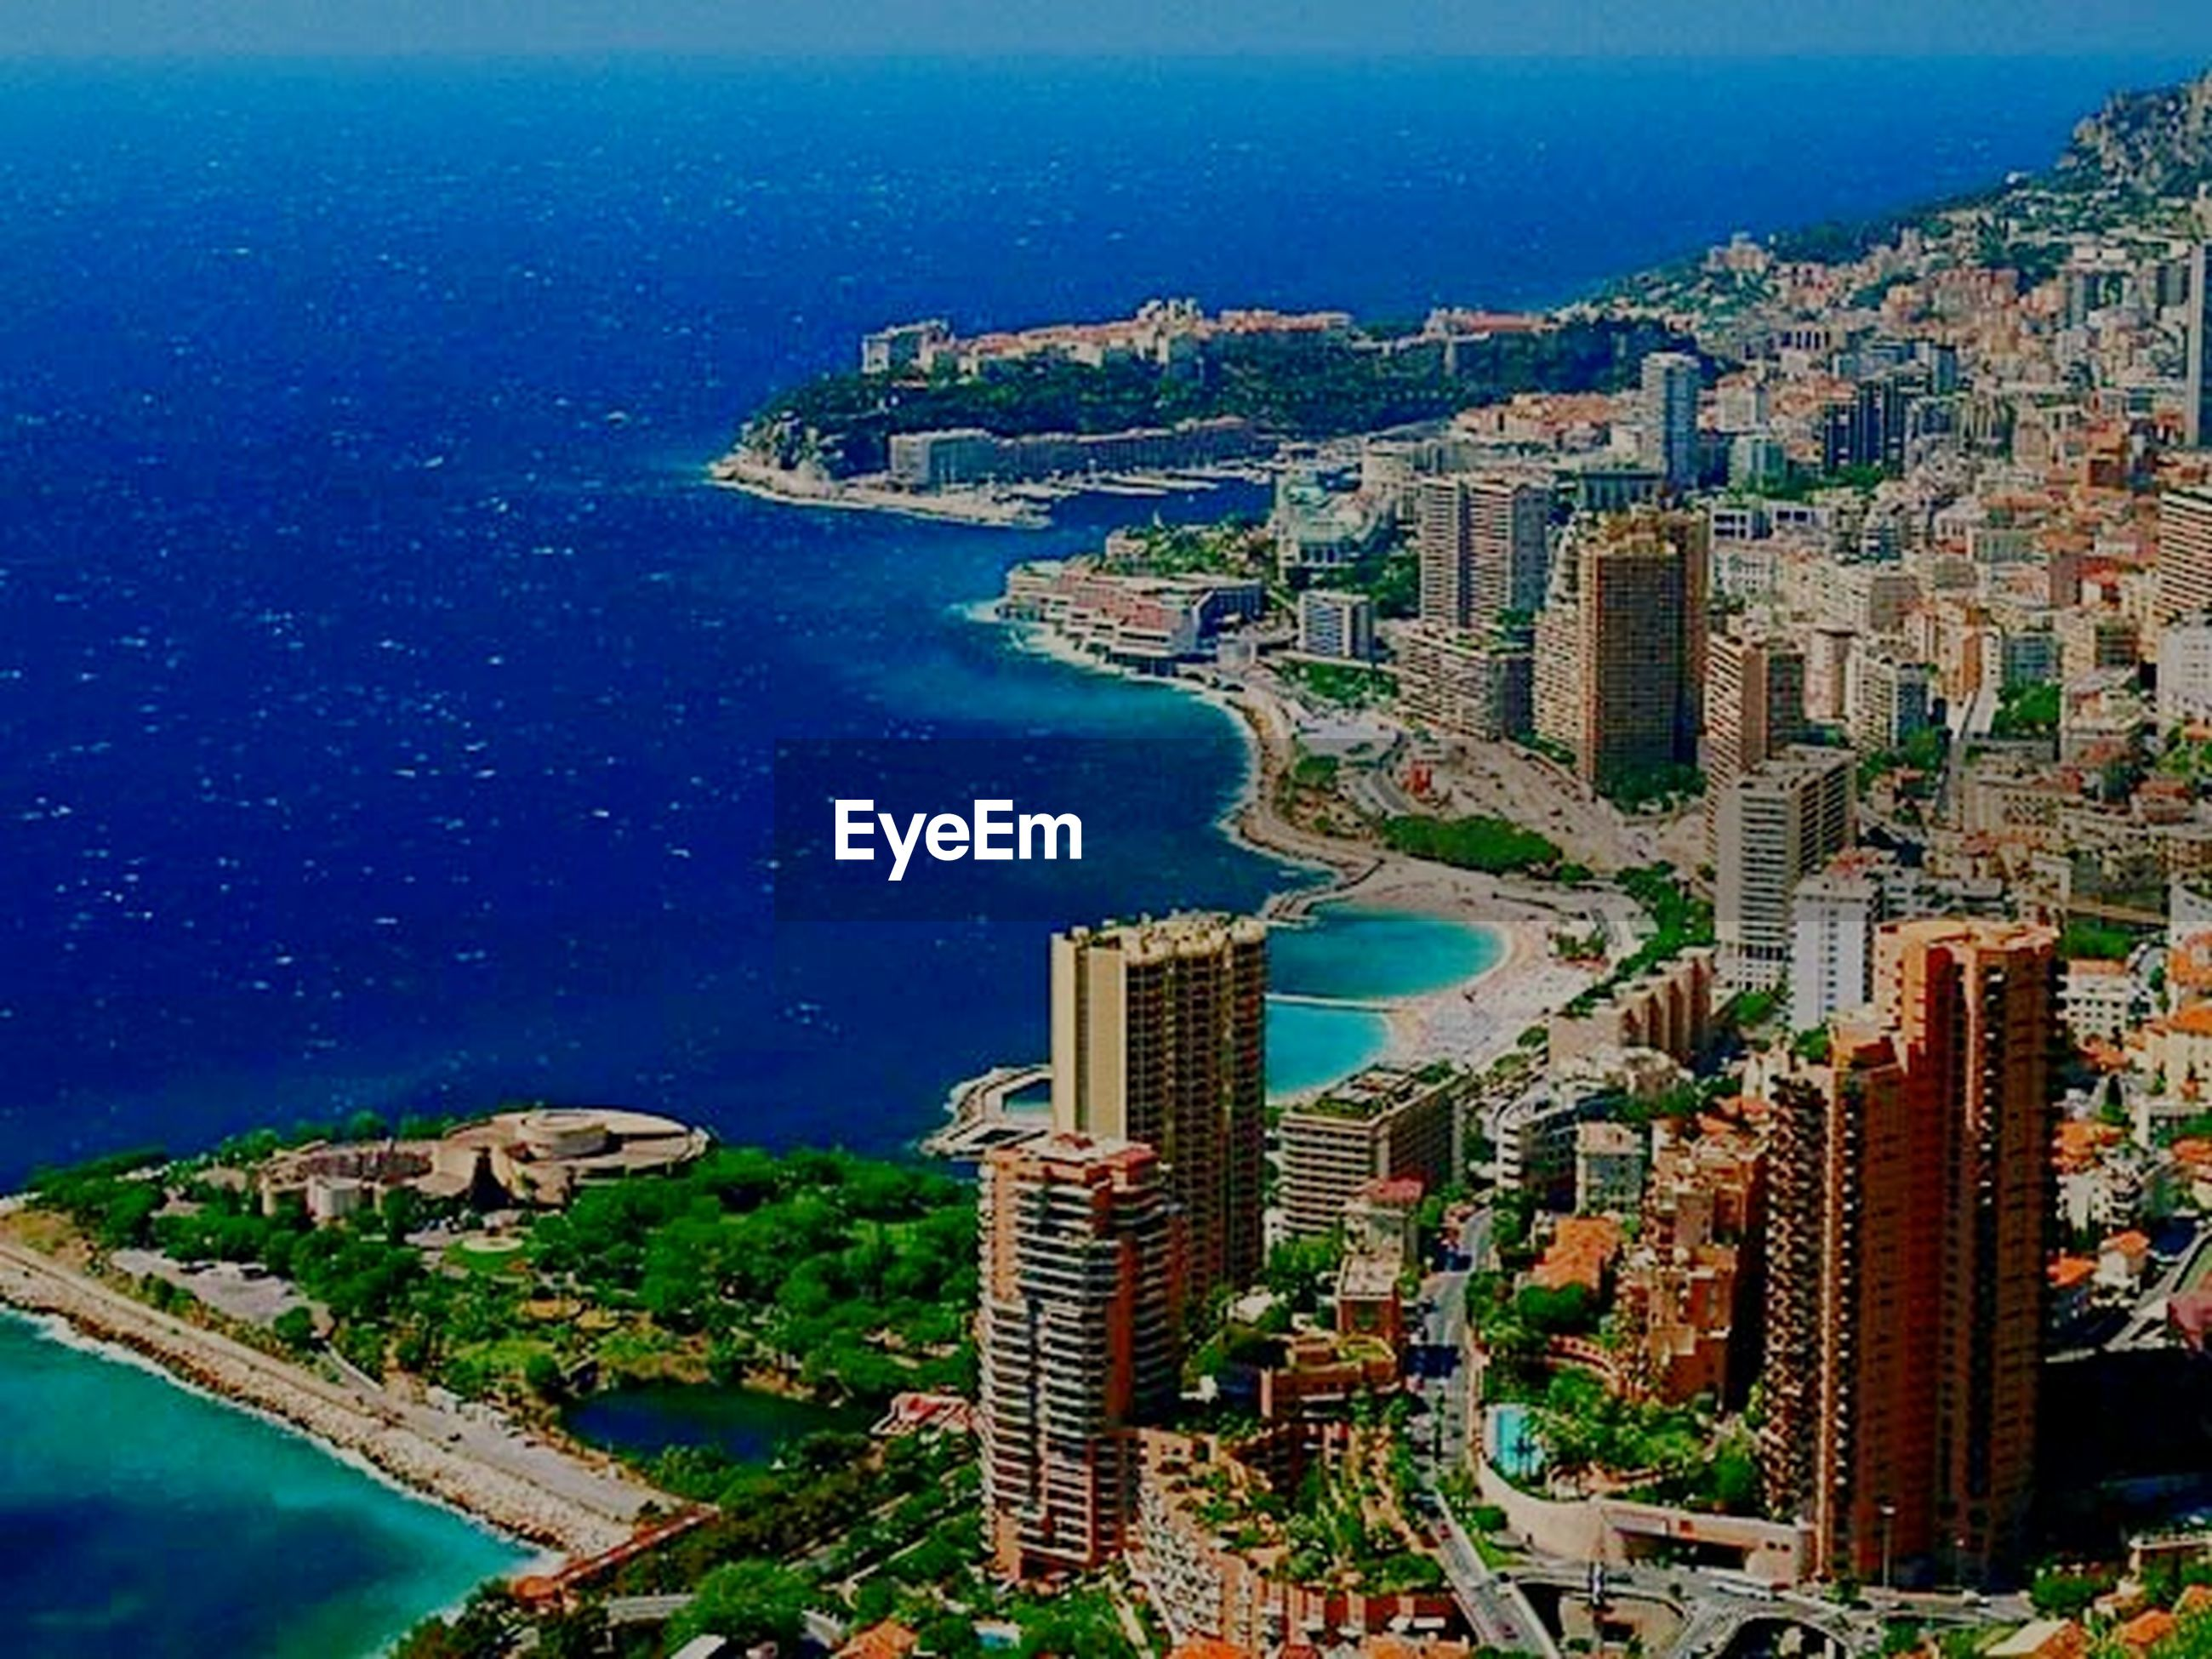 sea, water, building exterior, architecture, built structure, high angle view, city, blue, cityscape, coastline, horizon over water, residential building, aerial view, beach, residential district, residential structure, waterfront, sky, shore, nature